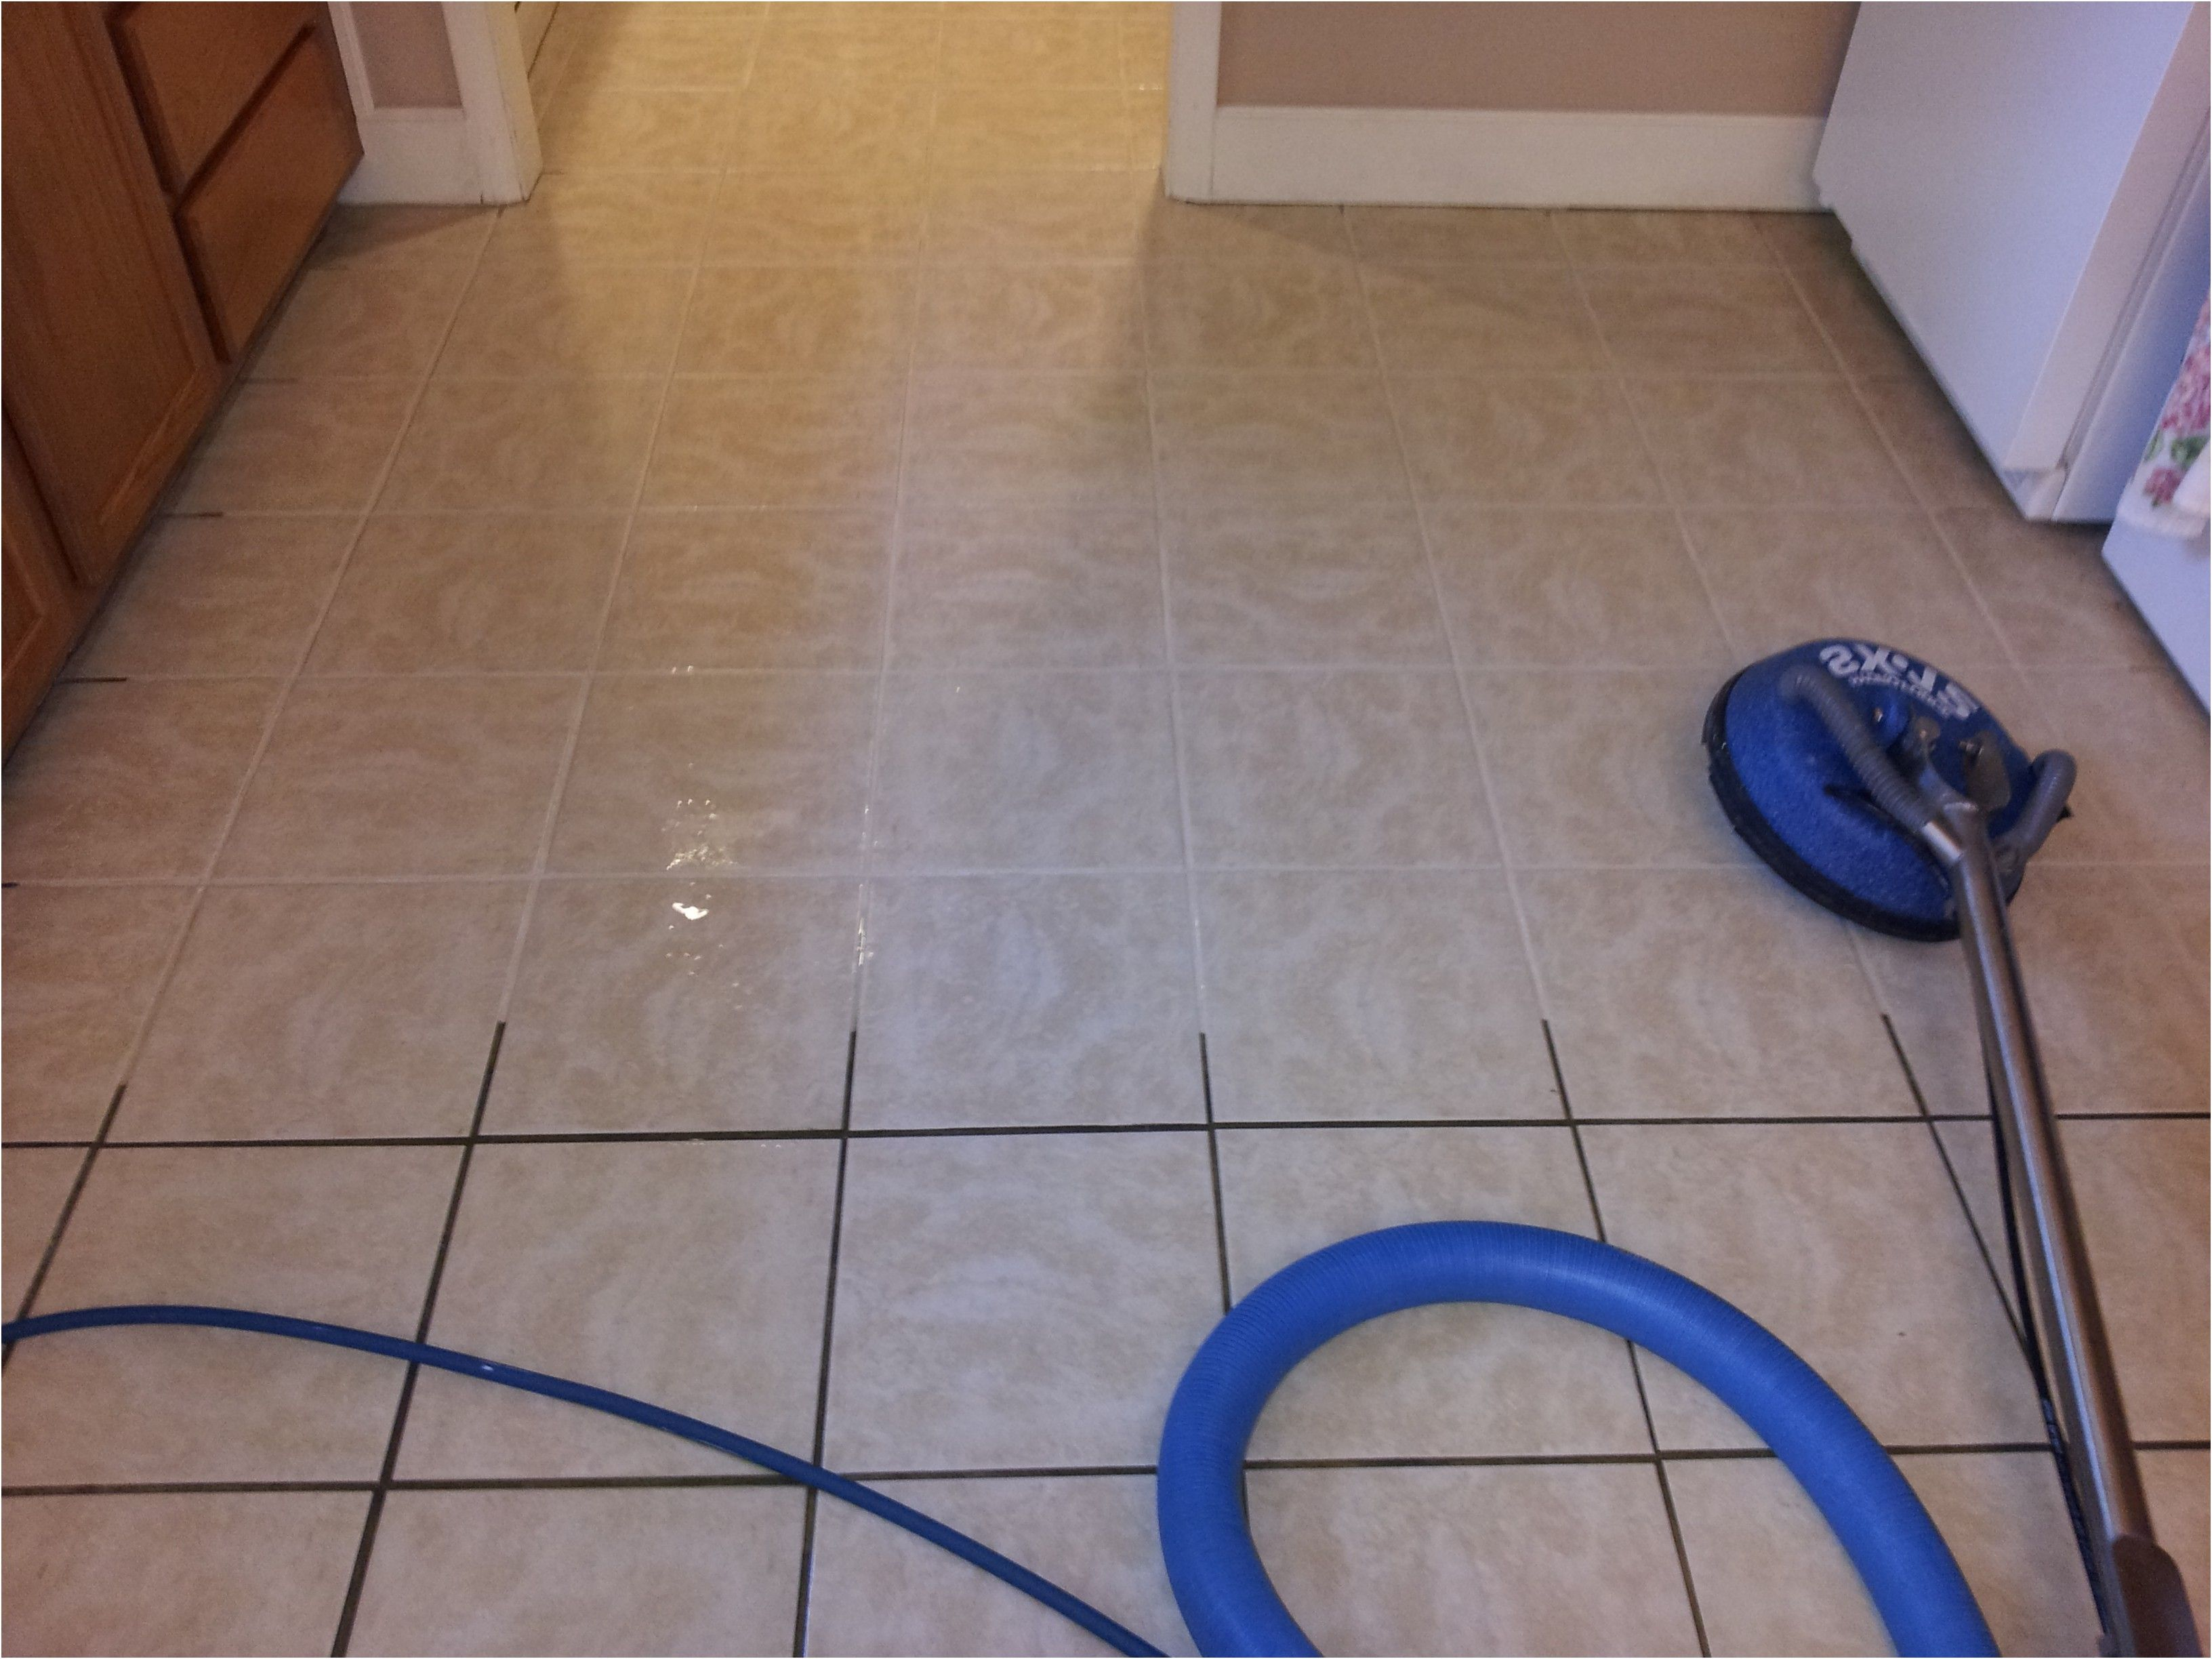 How To Clean Ceramic Tile Floors With Vinegar Hunker Cleaning Ceramic Tiles Tile Floor Ceramic Floor Tiles